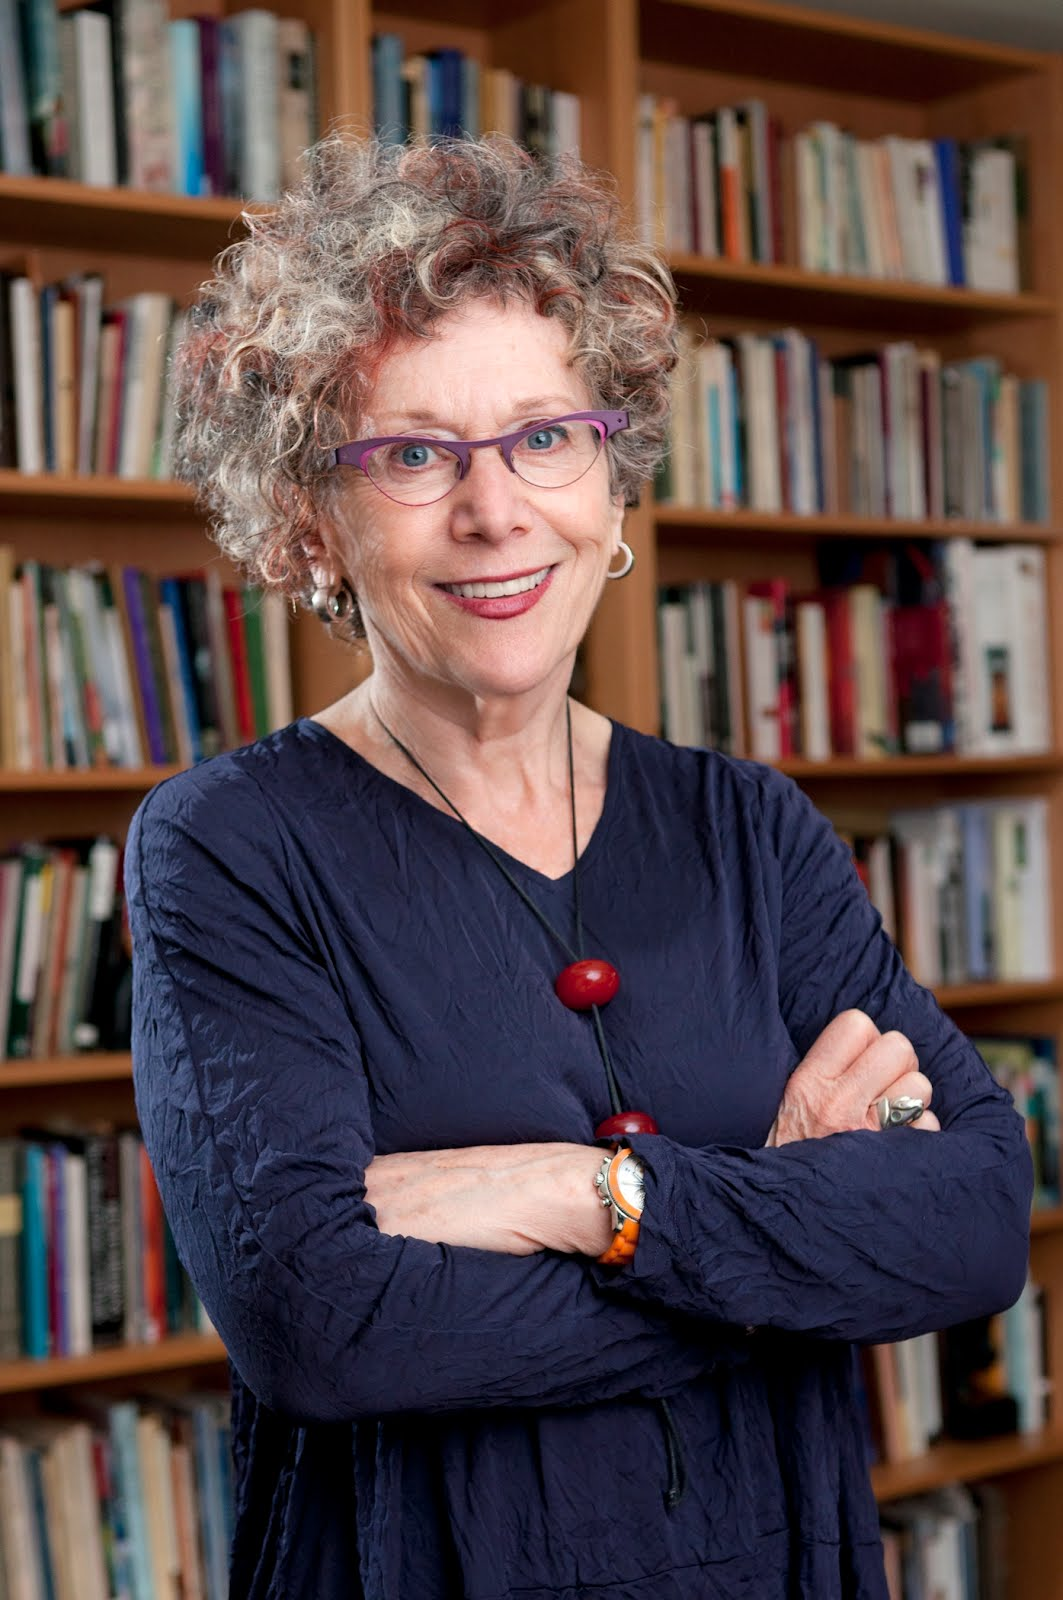 3b3be23f8a3f97 Lorna Crozier resides on Vancouver Island and is a distinguished professor  at the University of Victoria. She is, without doubt, one of Canada's most  ...